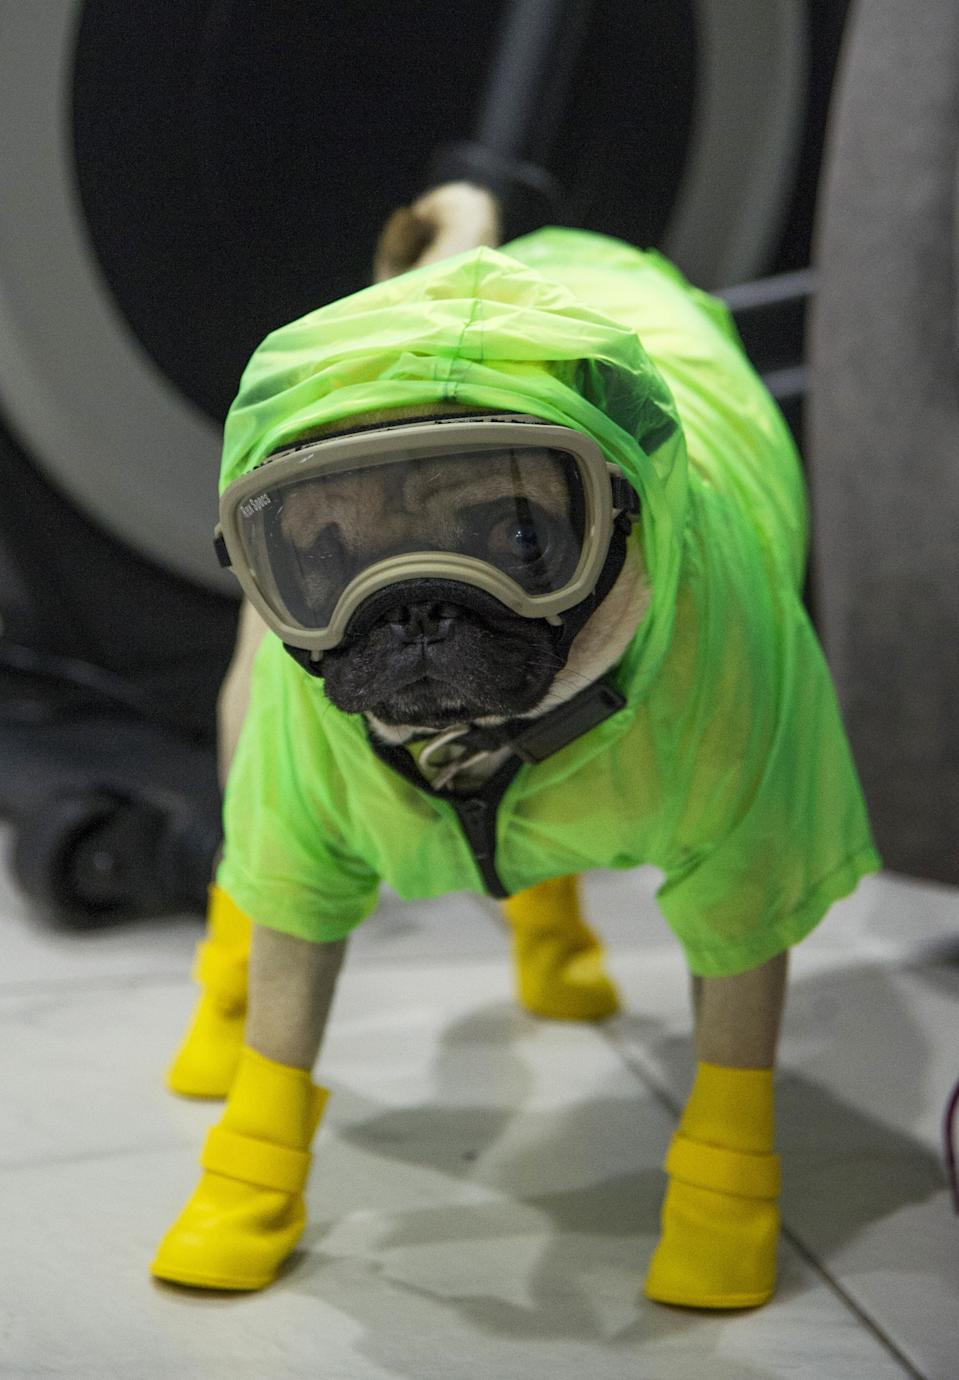 Harley, a three-year-old Pug puppy, wears protective equipment to prevent the spread of the new coronavirus, COVID-19, in Mexico City, on May 13, 2020. (Photo by CLAUDIO CRUZ / AFP)